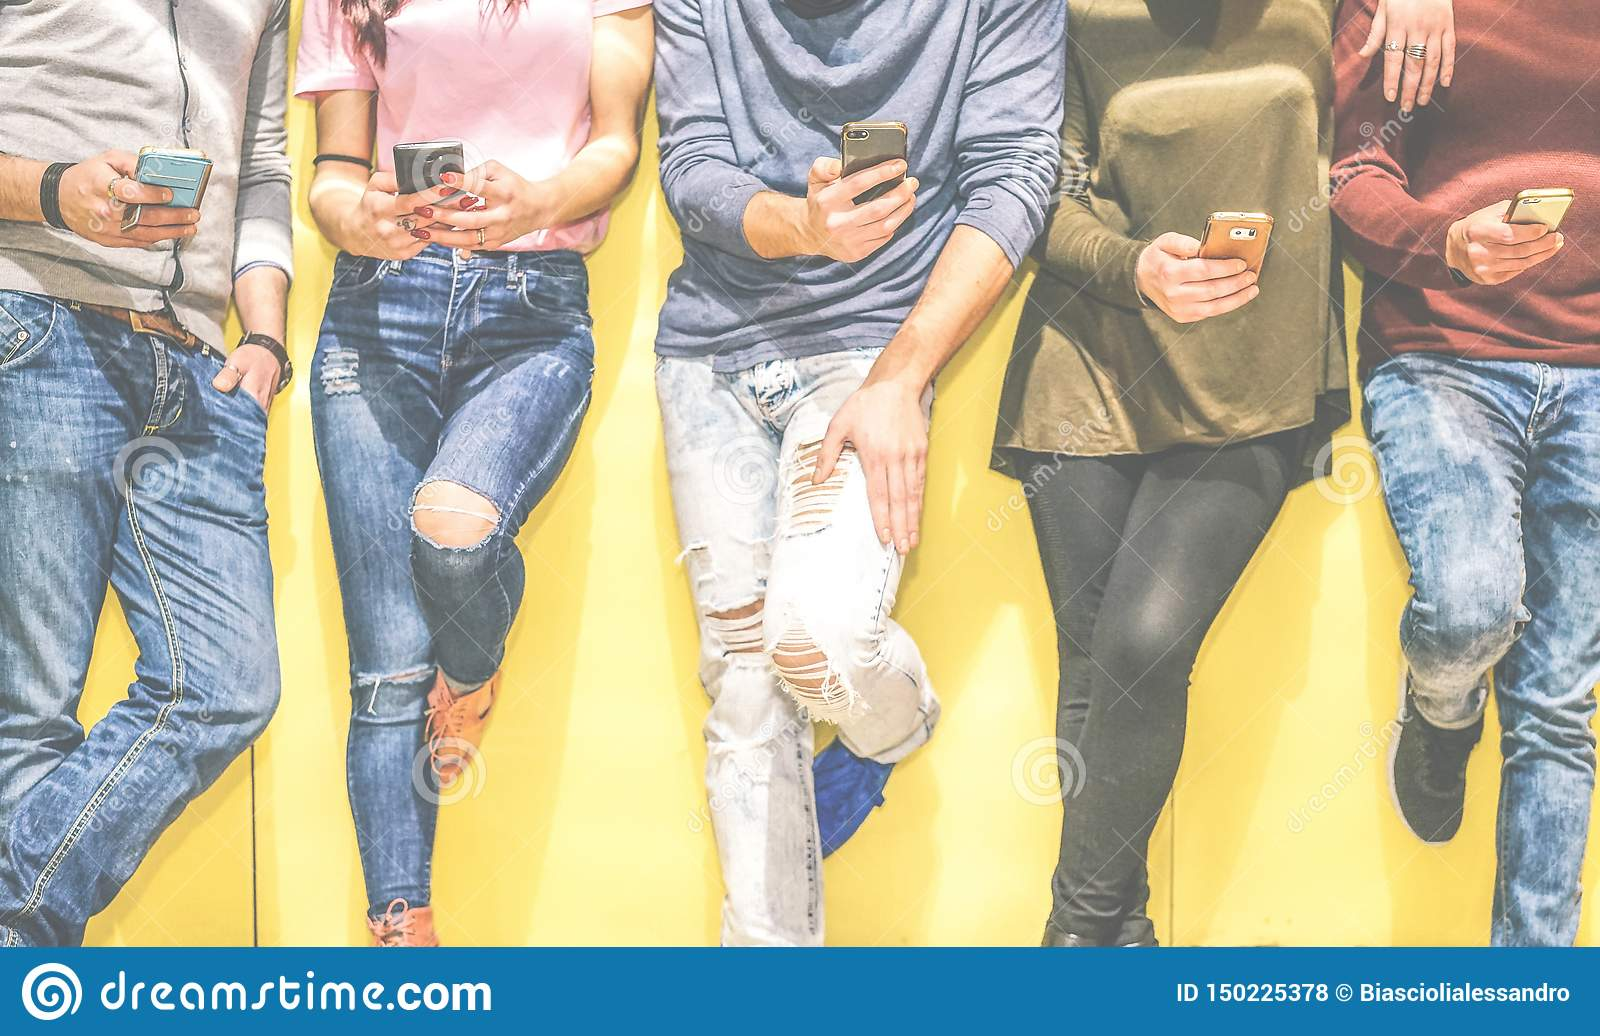 Group of young friends leaning on a wall using mobile phones - Multiracial people connecting on social network with smart phone